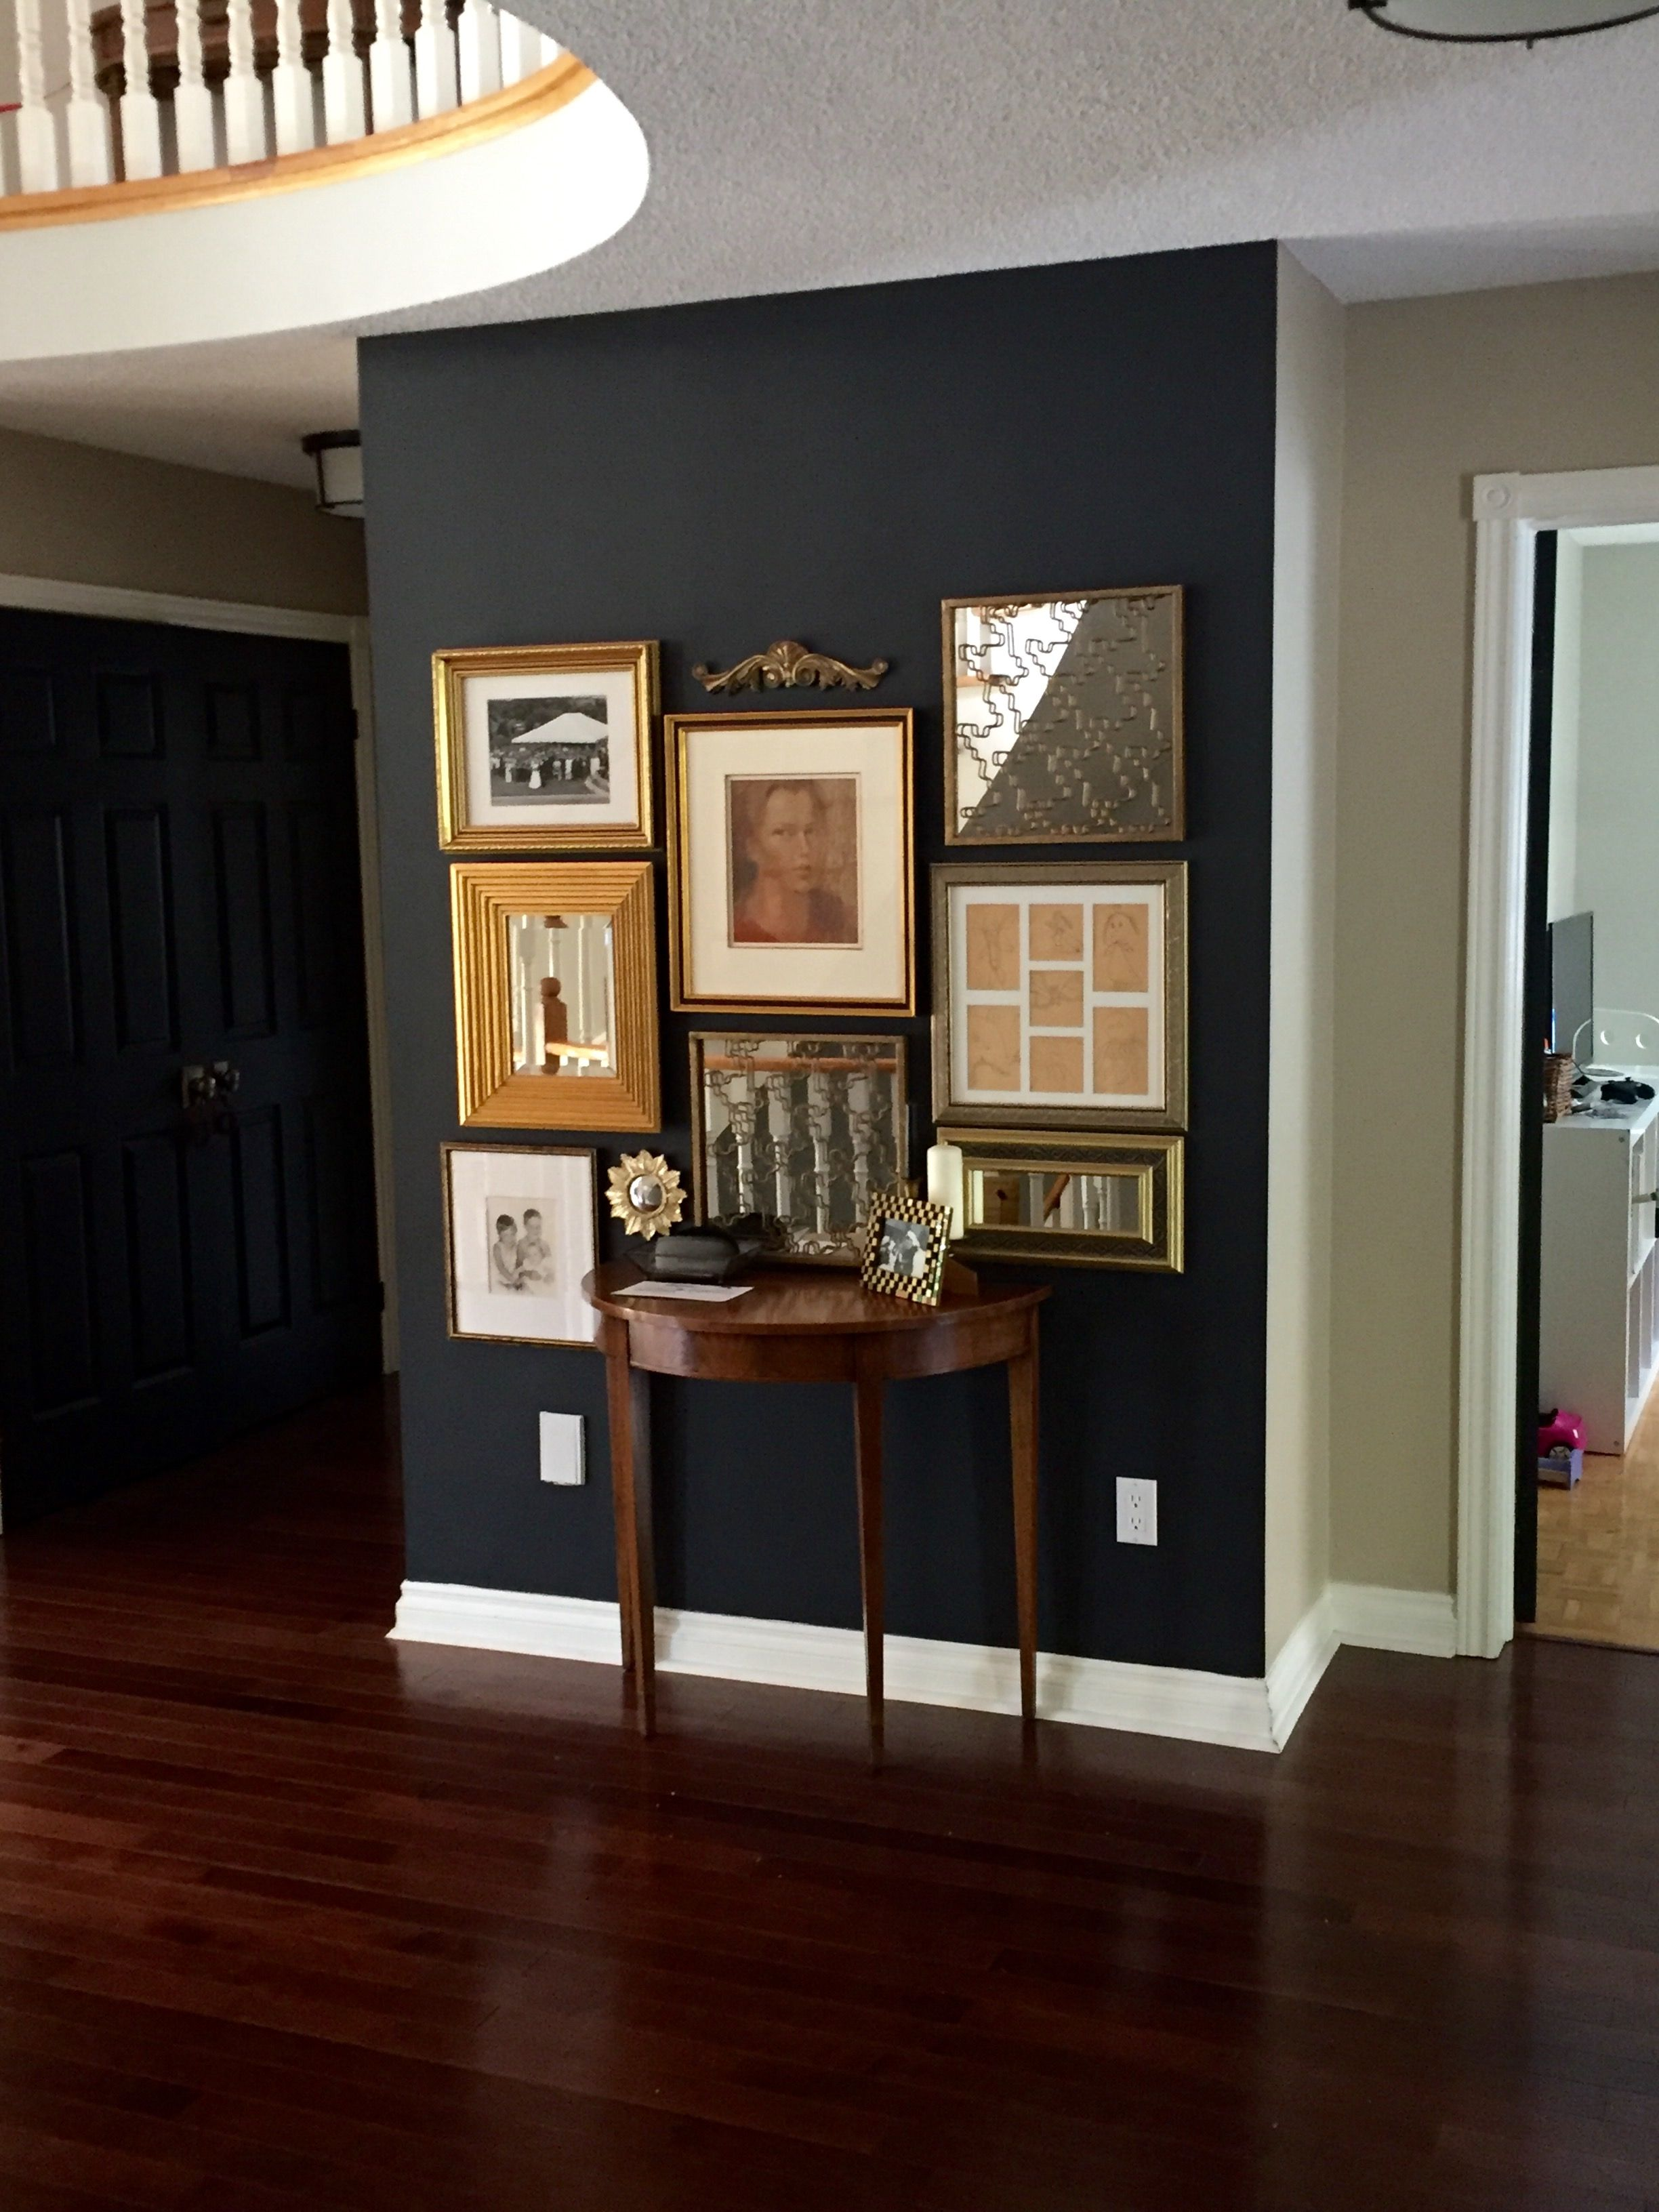 Benjamin Moore Wrought Iron Gallery Wall With Gold Frames Black